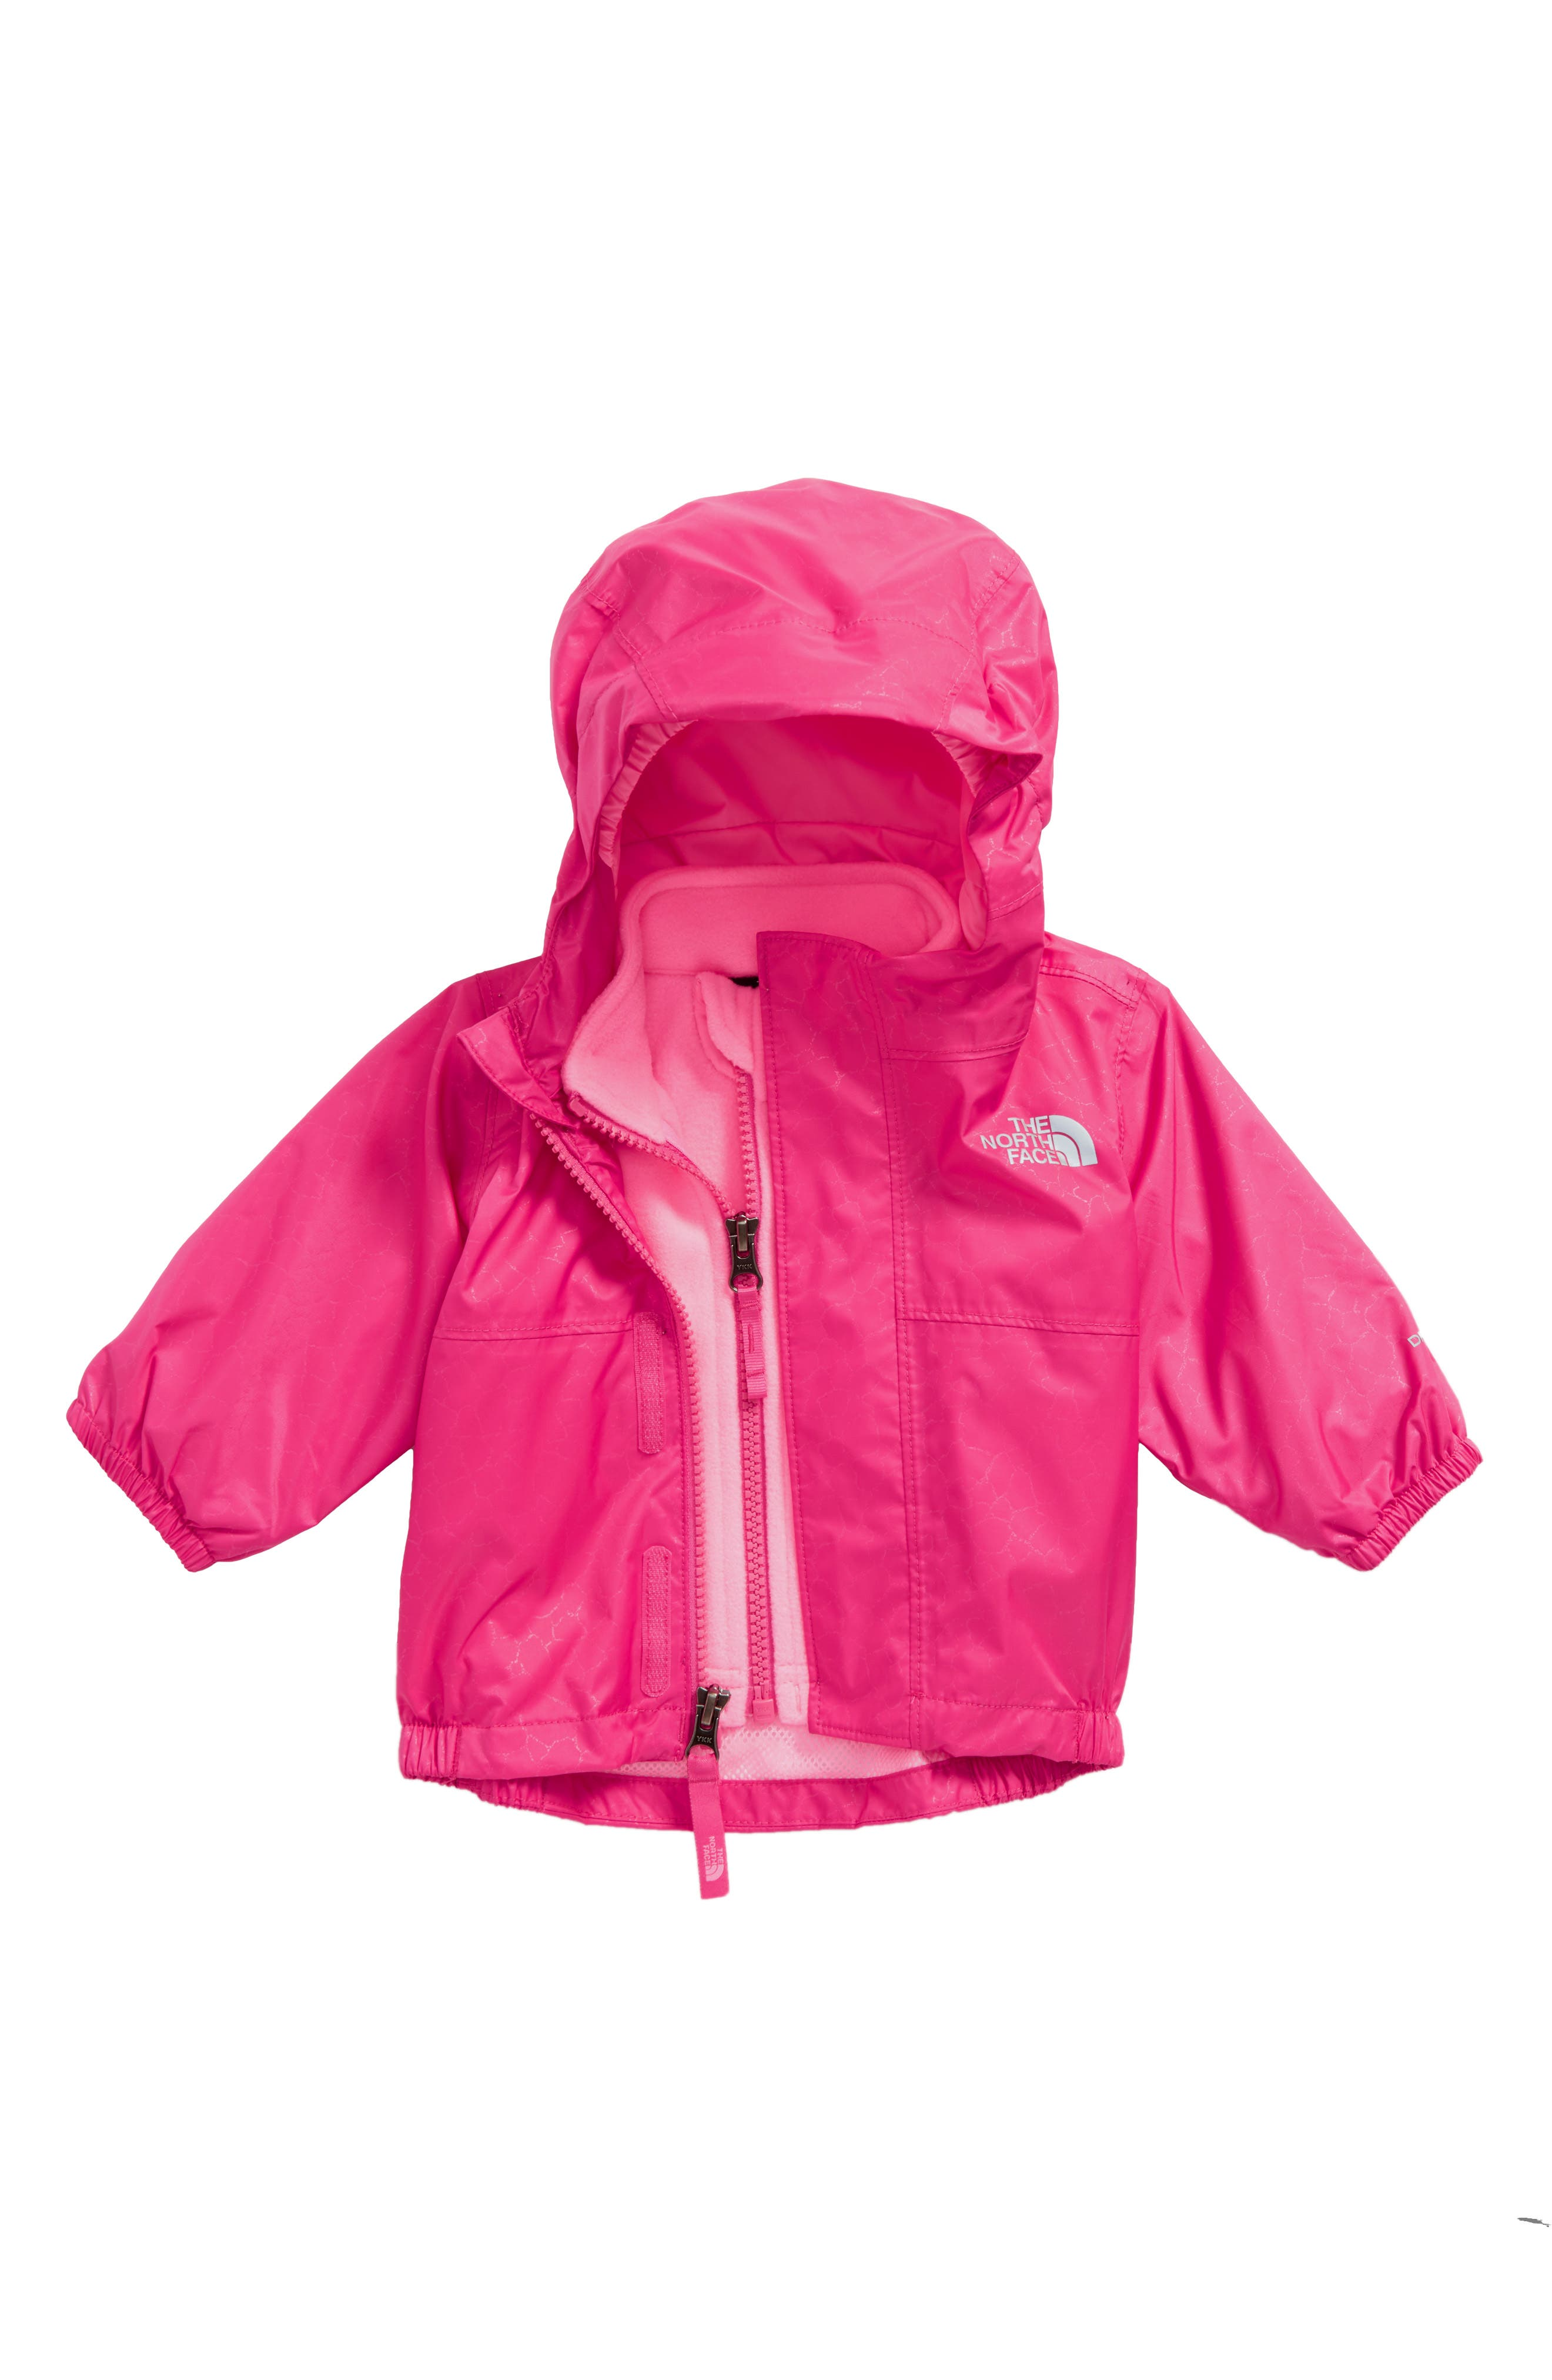 Stormy Rain TriClimate<sup>®</sup> Waterproof & Windproof 3-in-1 Jacket,                         Main,                         color, Petticoat Pink Crackle Emboss